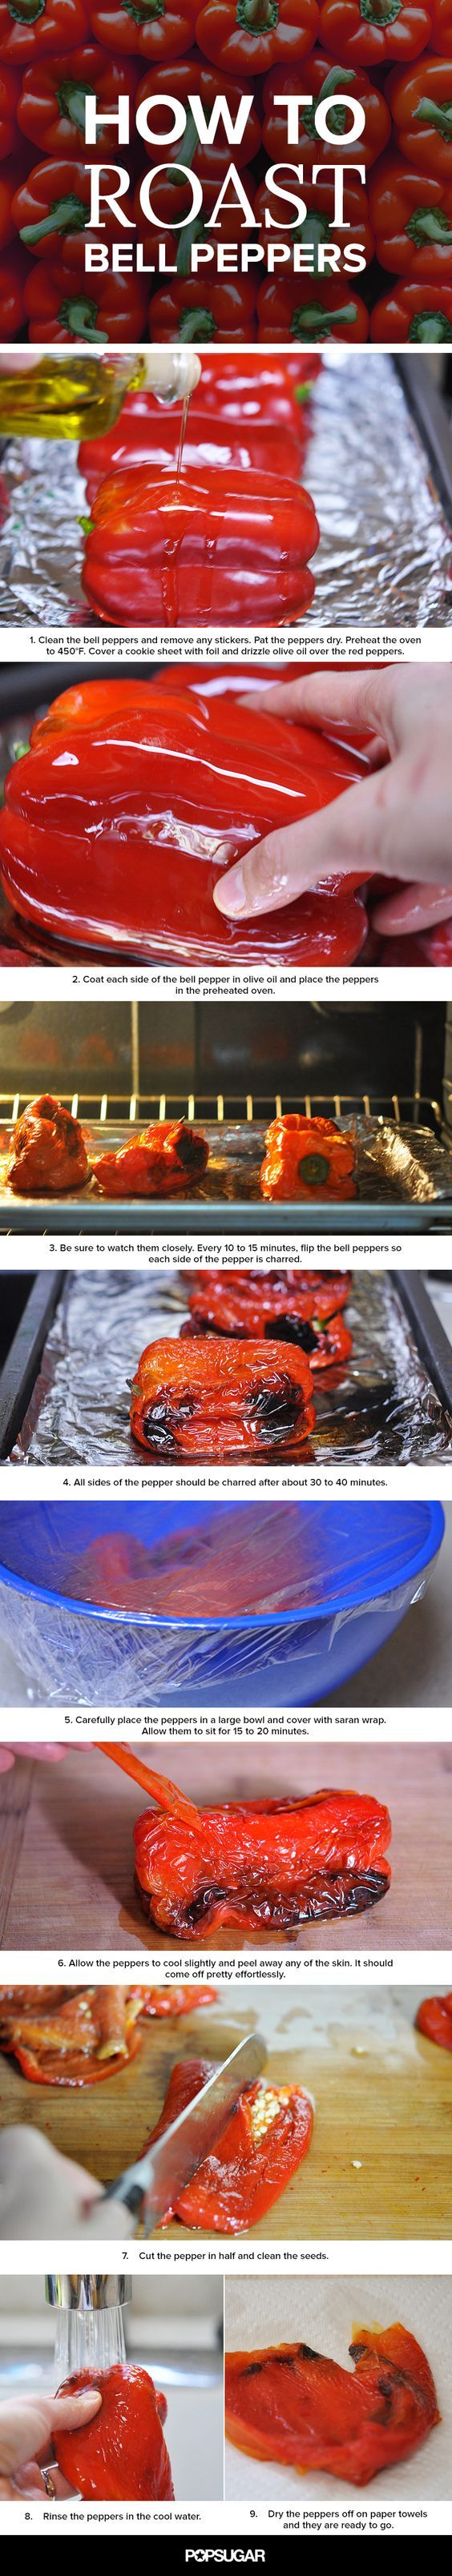 How to Roast Bell Peppers: